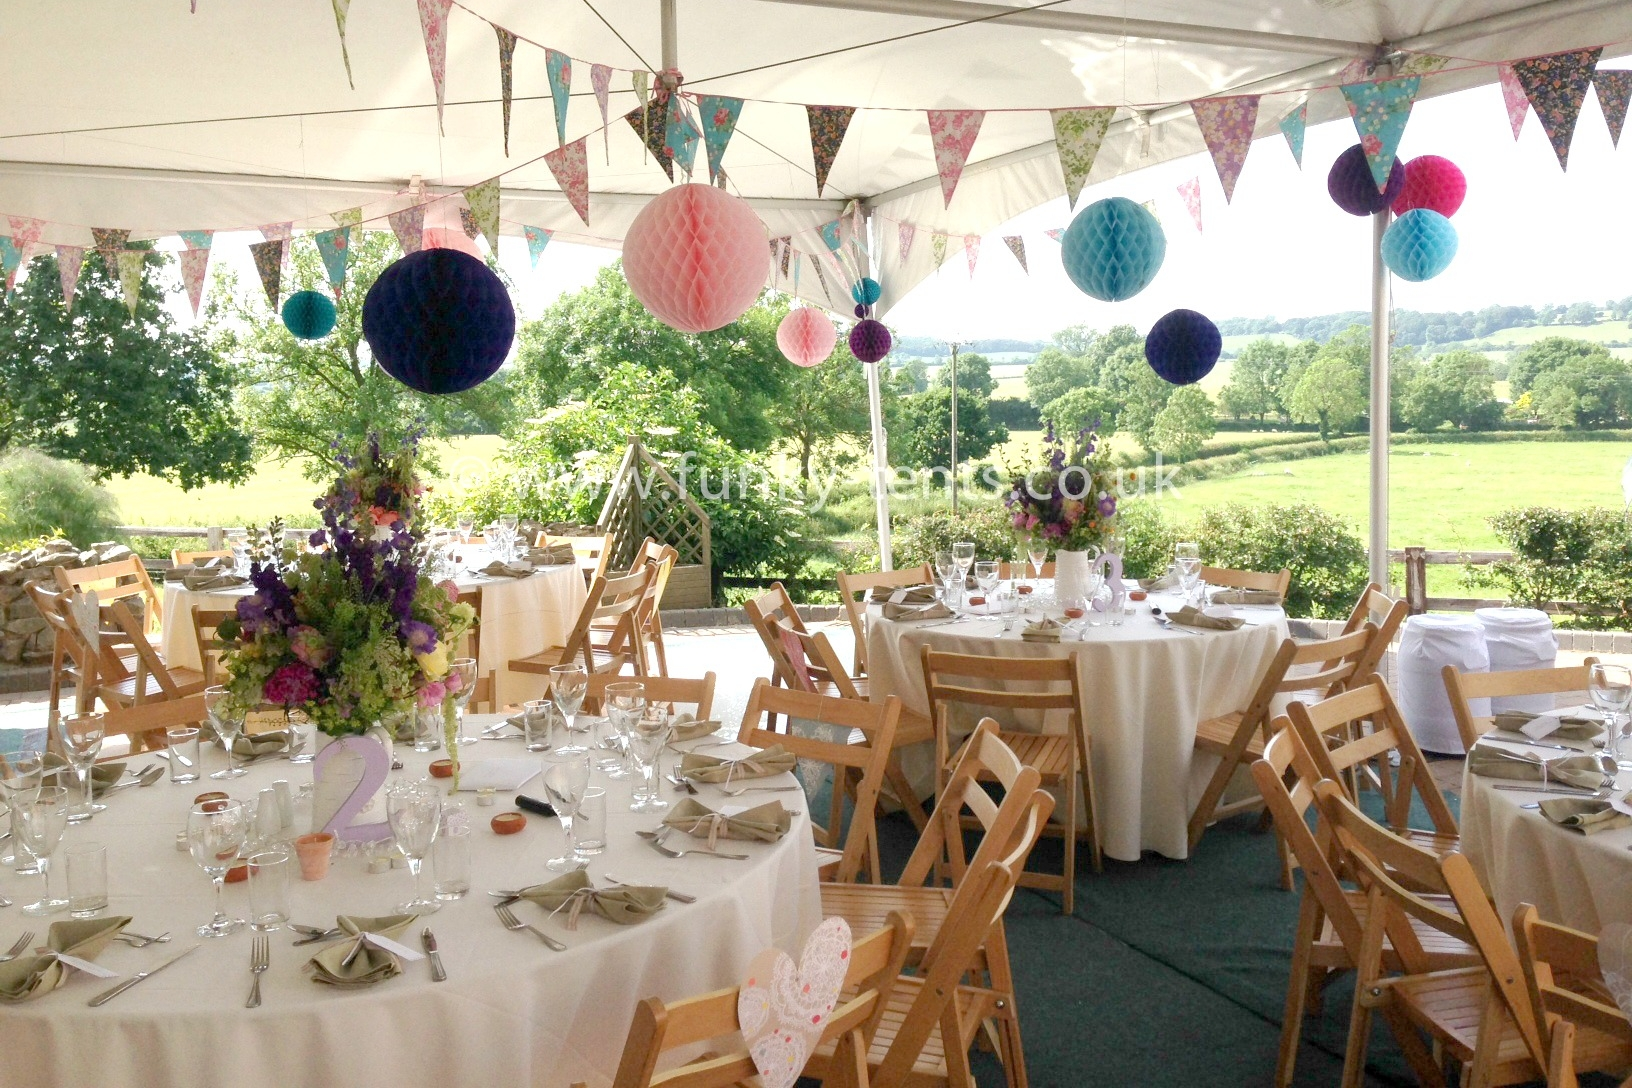 A 20ft x 30ft Matrix marquee with bunting & retro wooden chairs. Open sided for a summer lunch